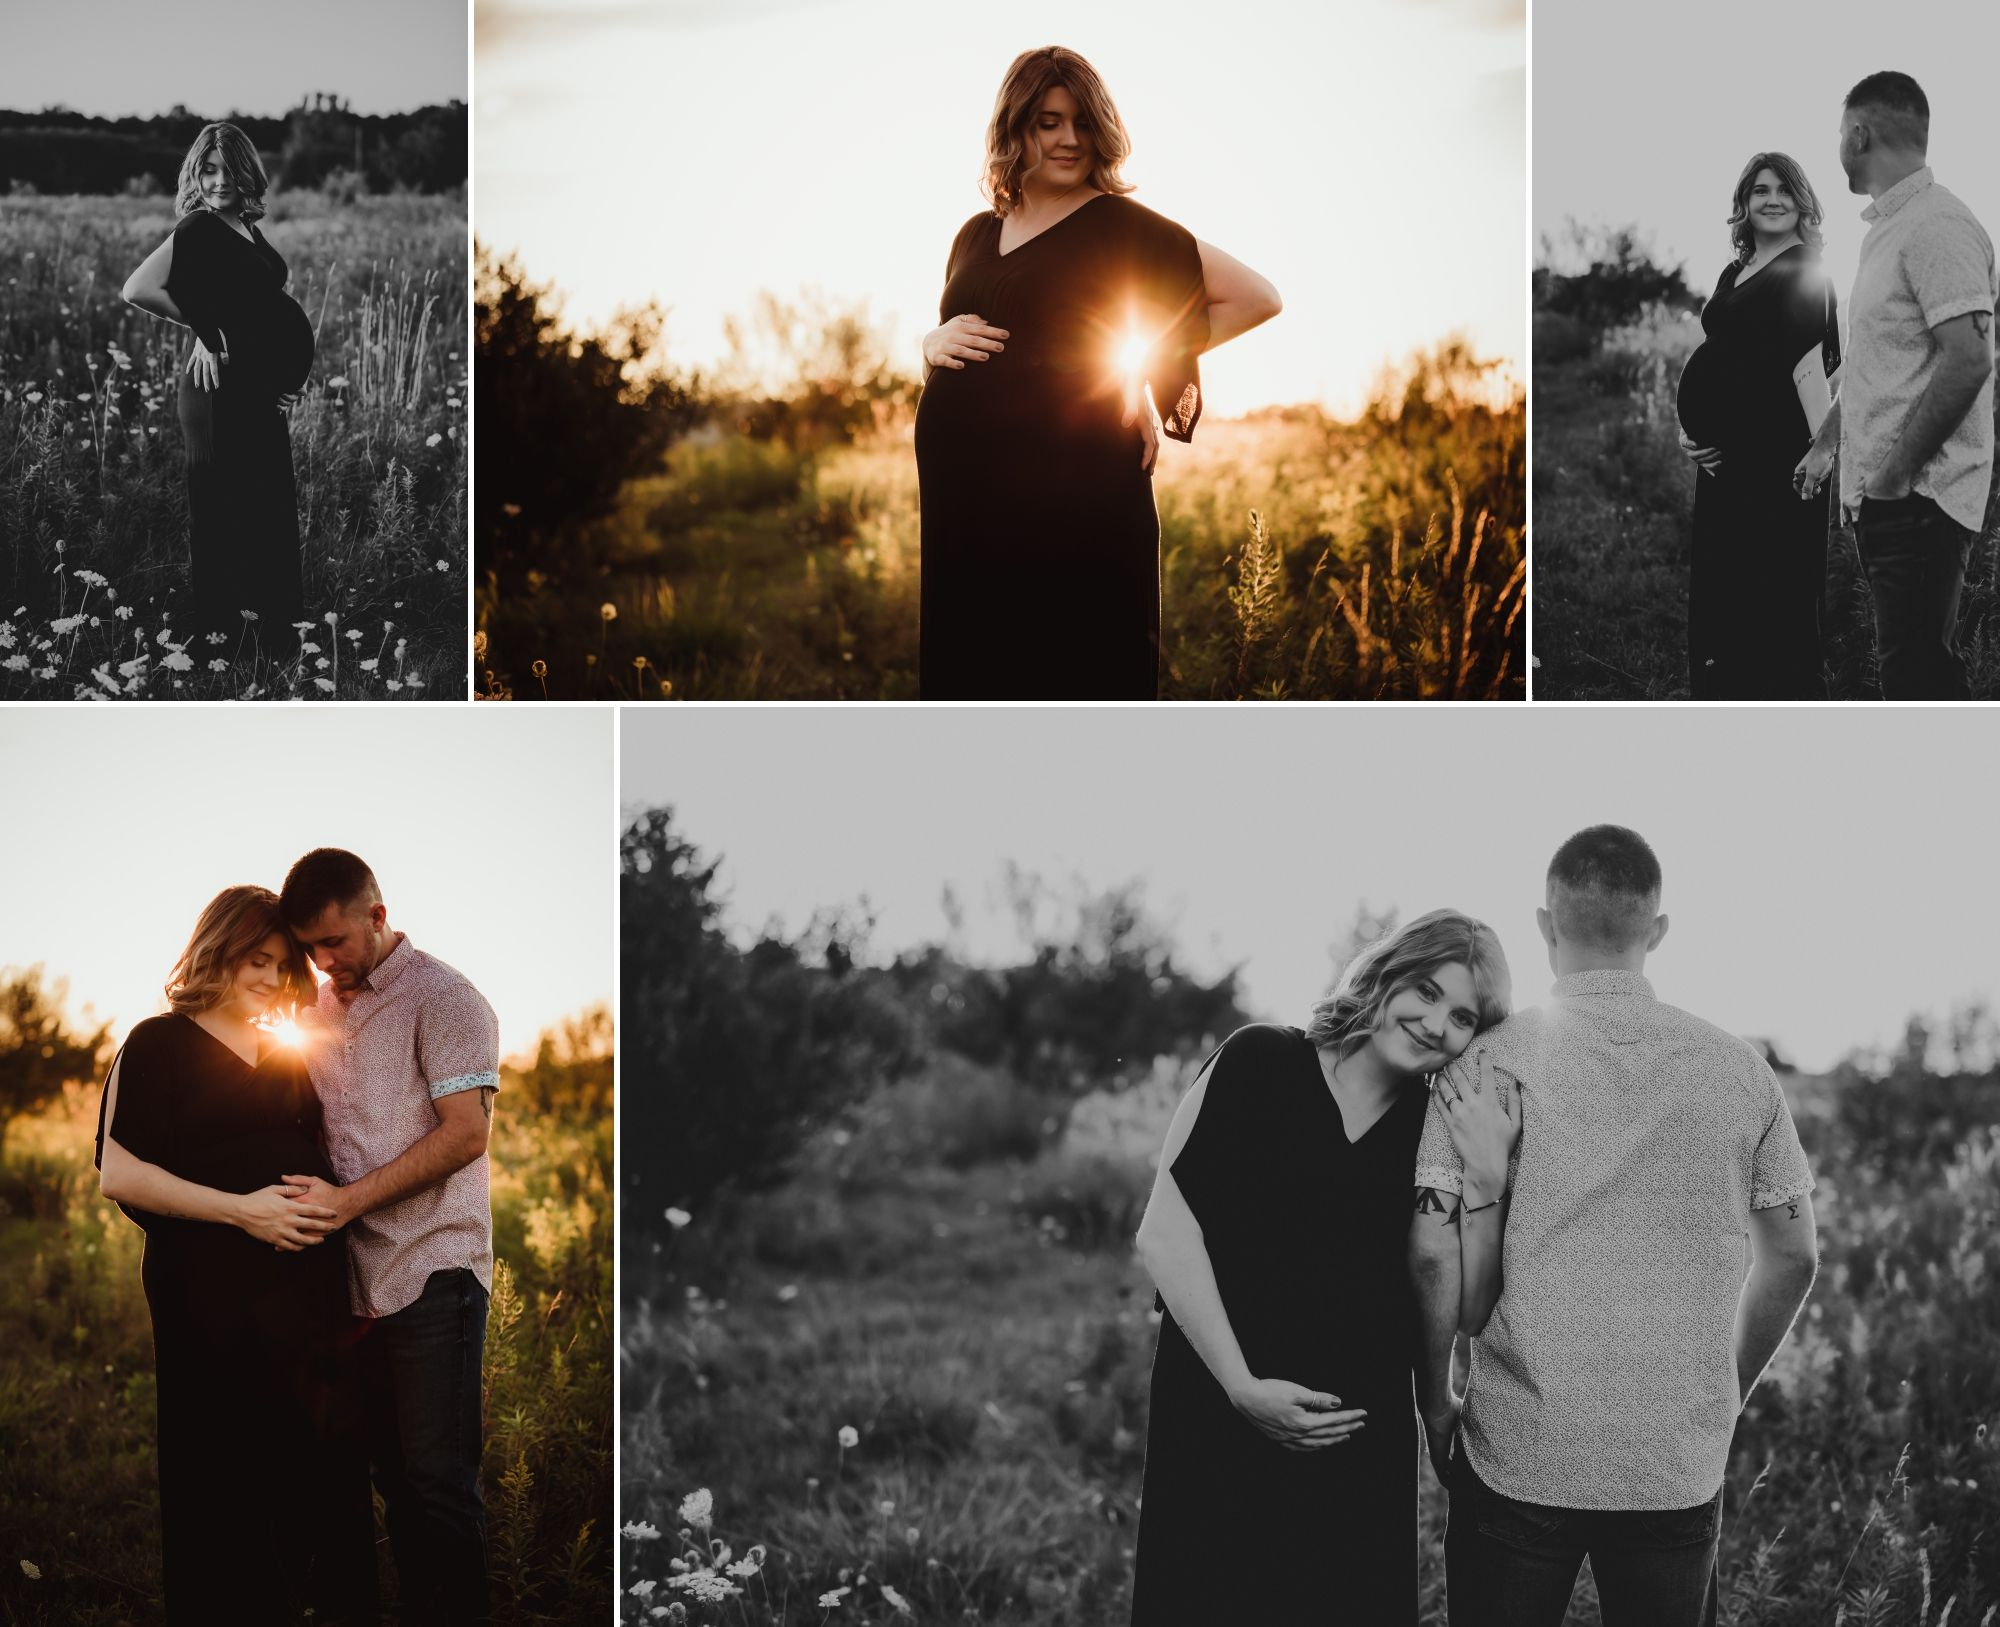 Photos of a man and pregnant woman in a field at sunset.